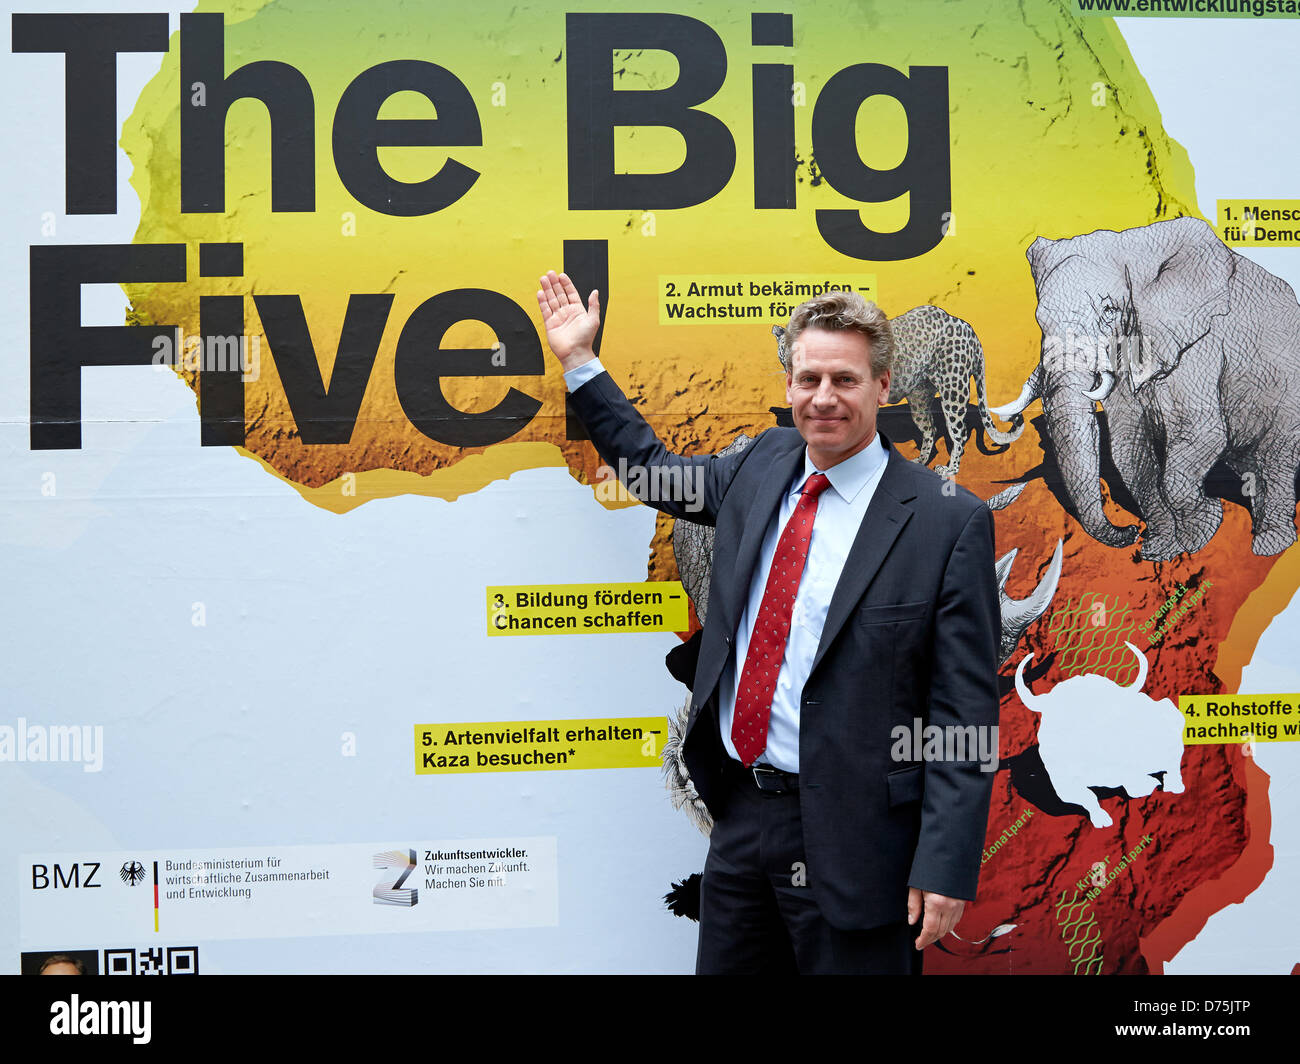 Berlin, 29 April 2013. Start of the national campaign 'The Big Five' with Dirk Niebel. Dirk Niebel, Federal - Stock Image